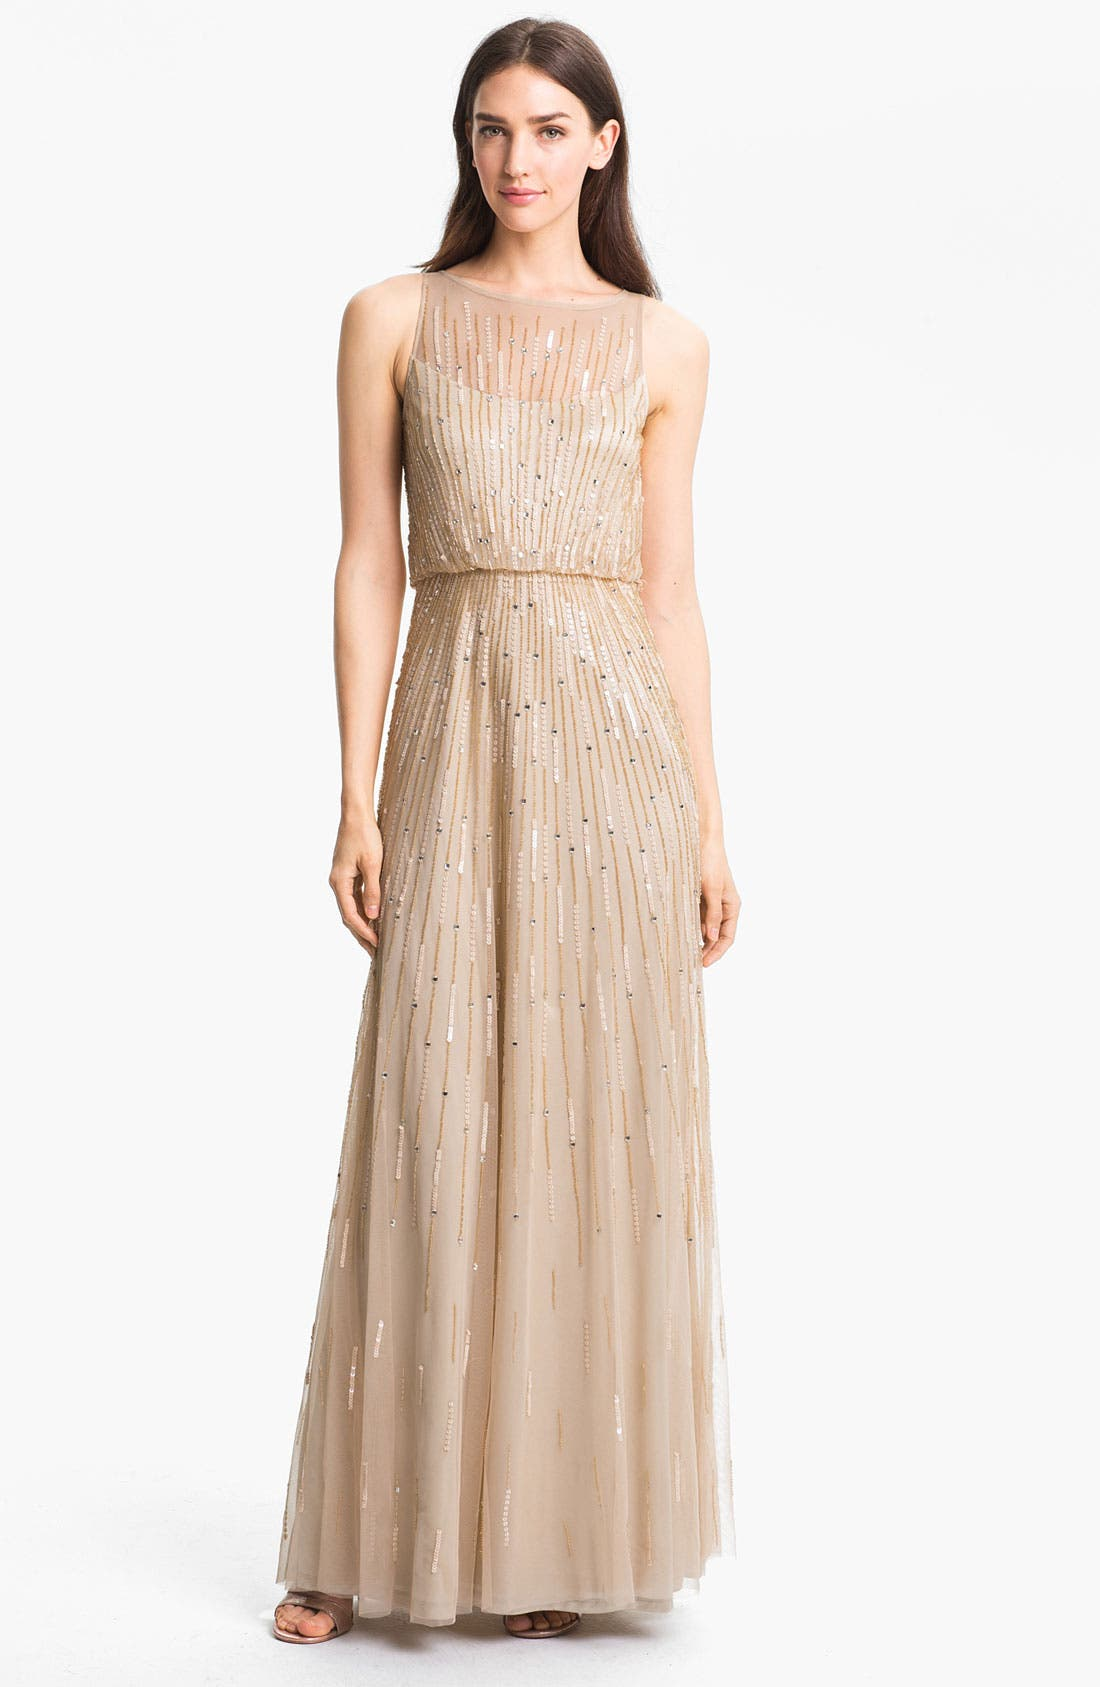 Main Image - Aidan Mattox Illusion Yoke Sequin Mesh Gown (Online Only)